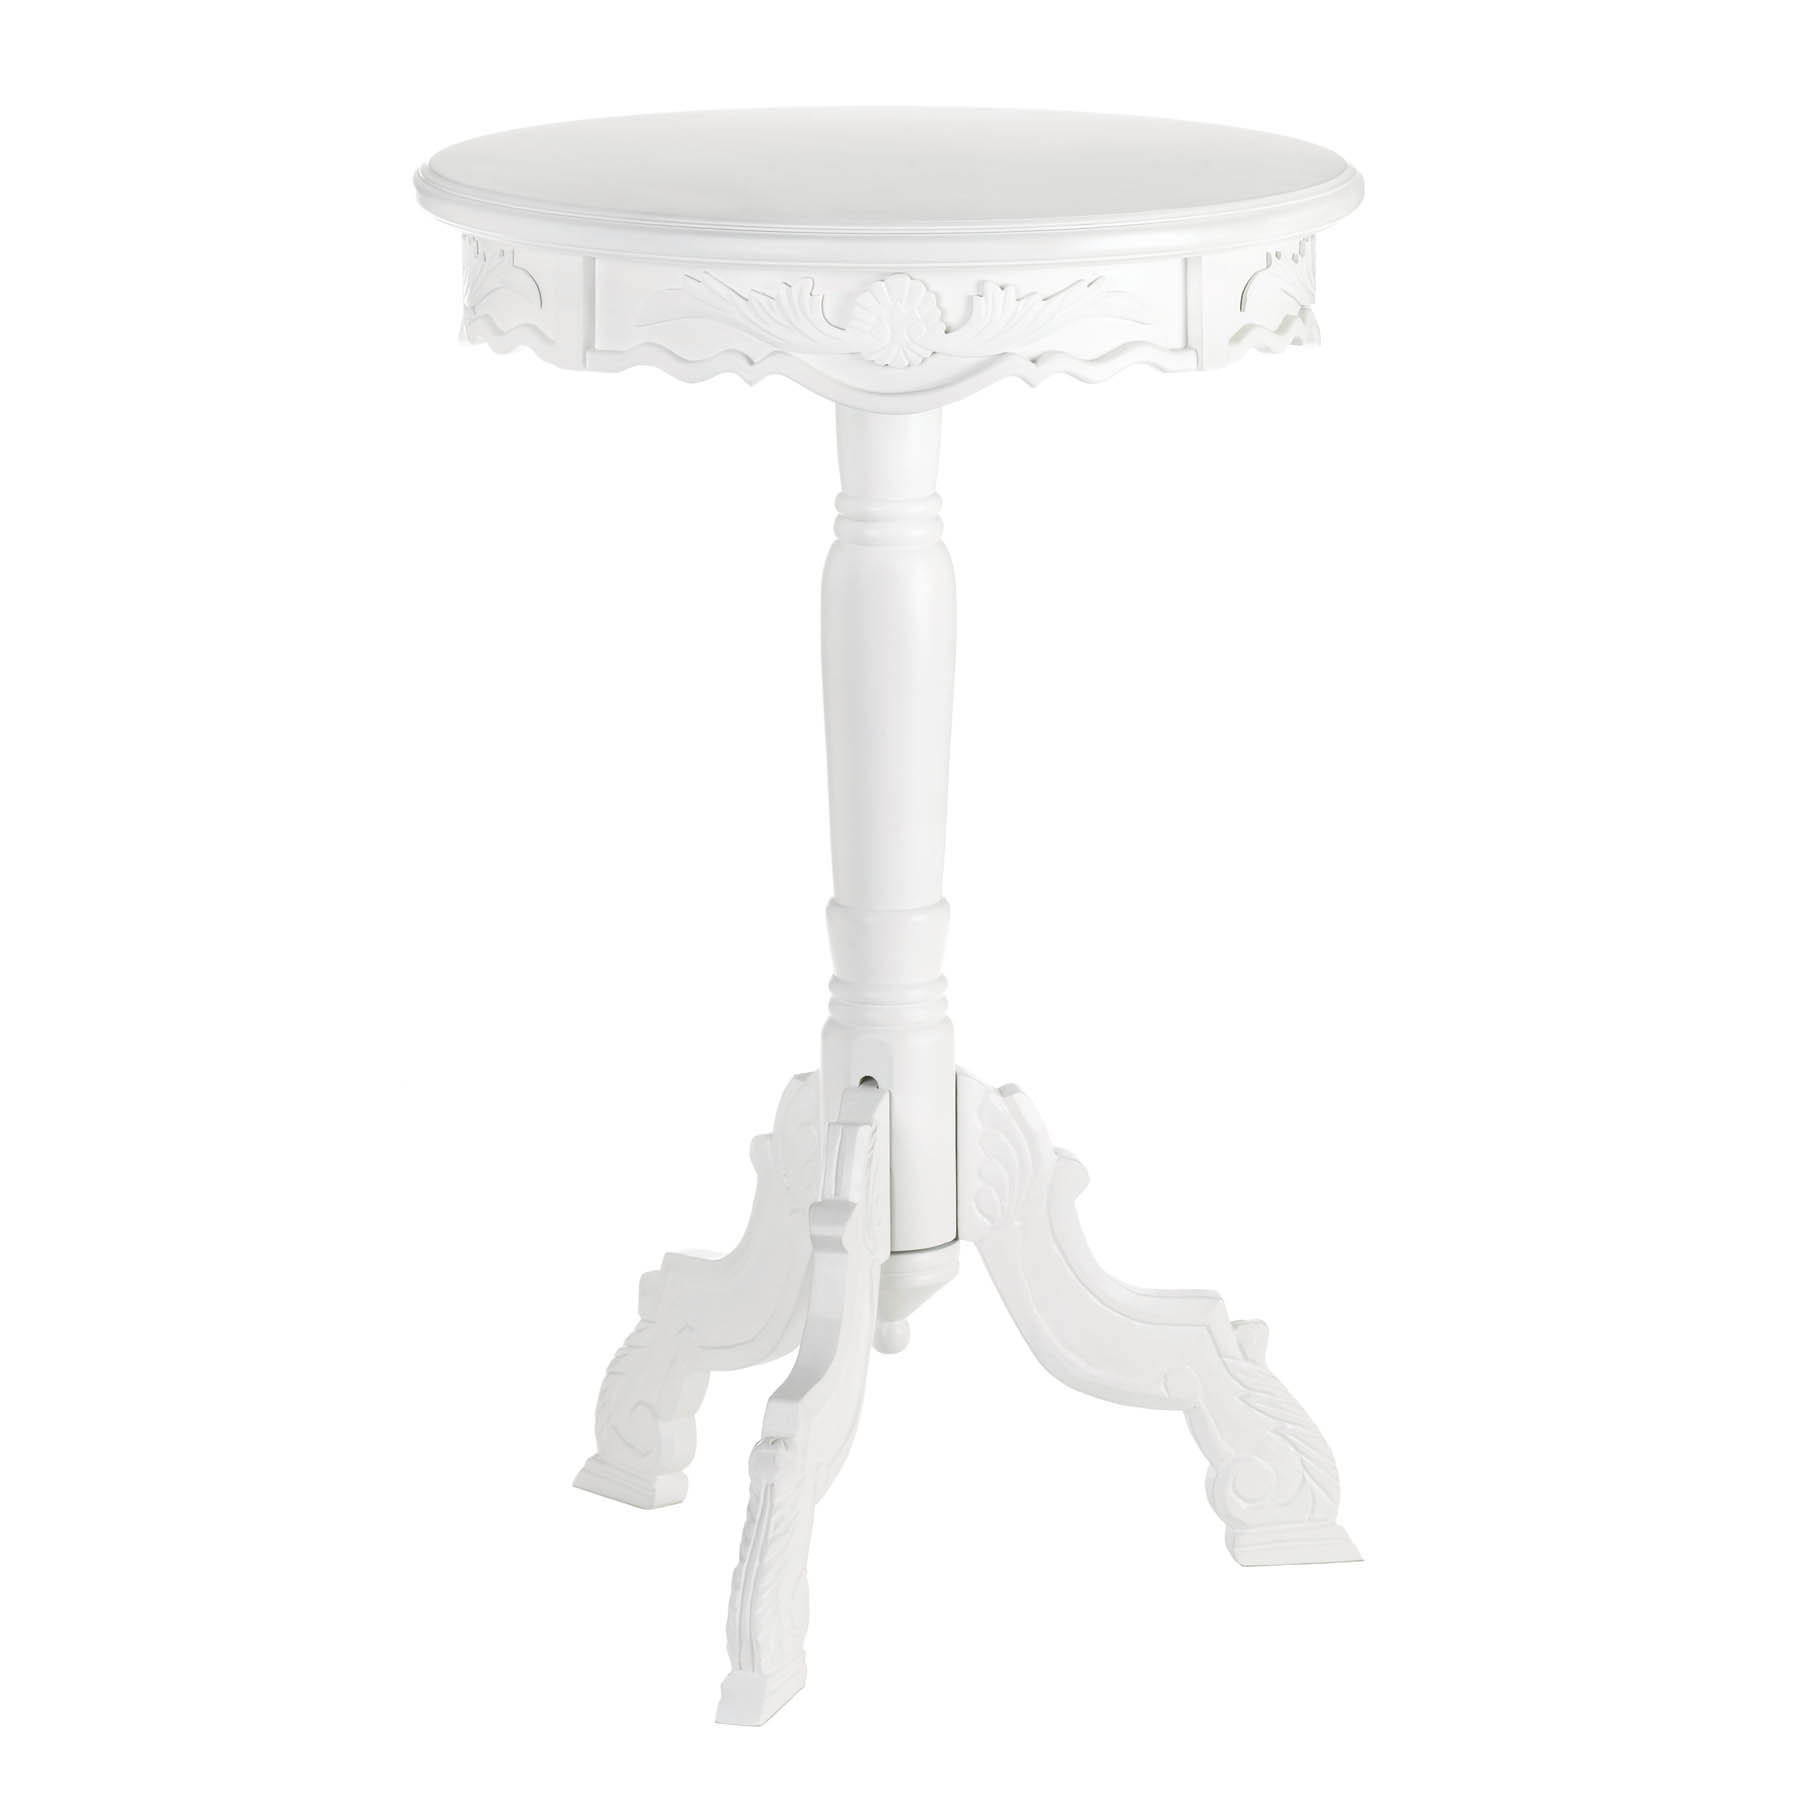 mini rococo accent table home decorative accents night stand stock ture small vintage end tables diy bar height console desk antique folding truck tool box garden string rectangle